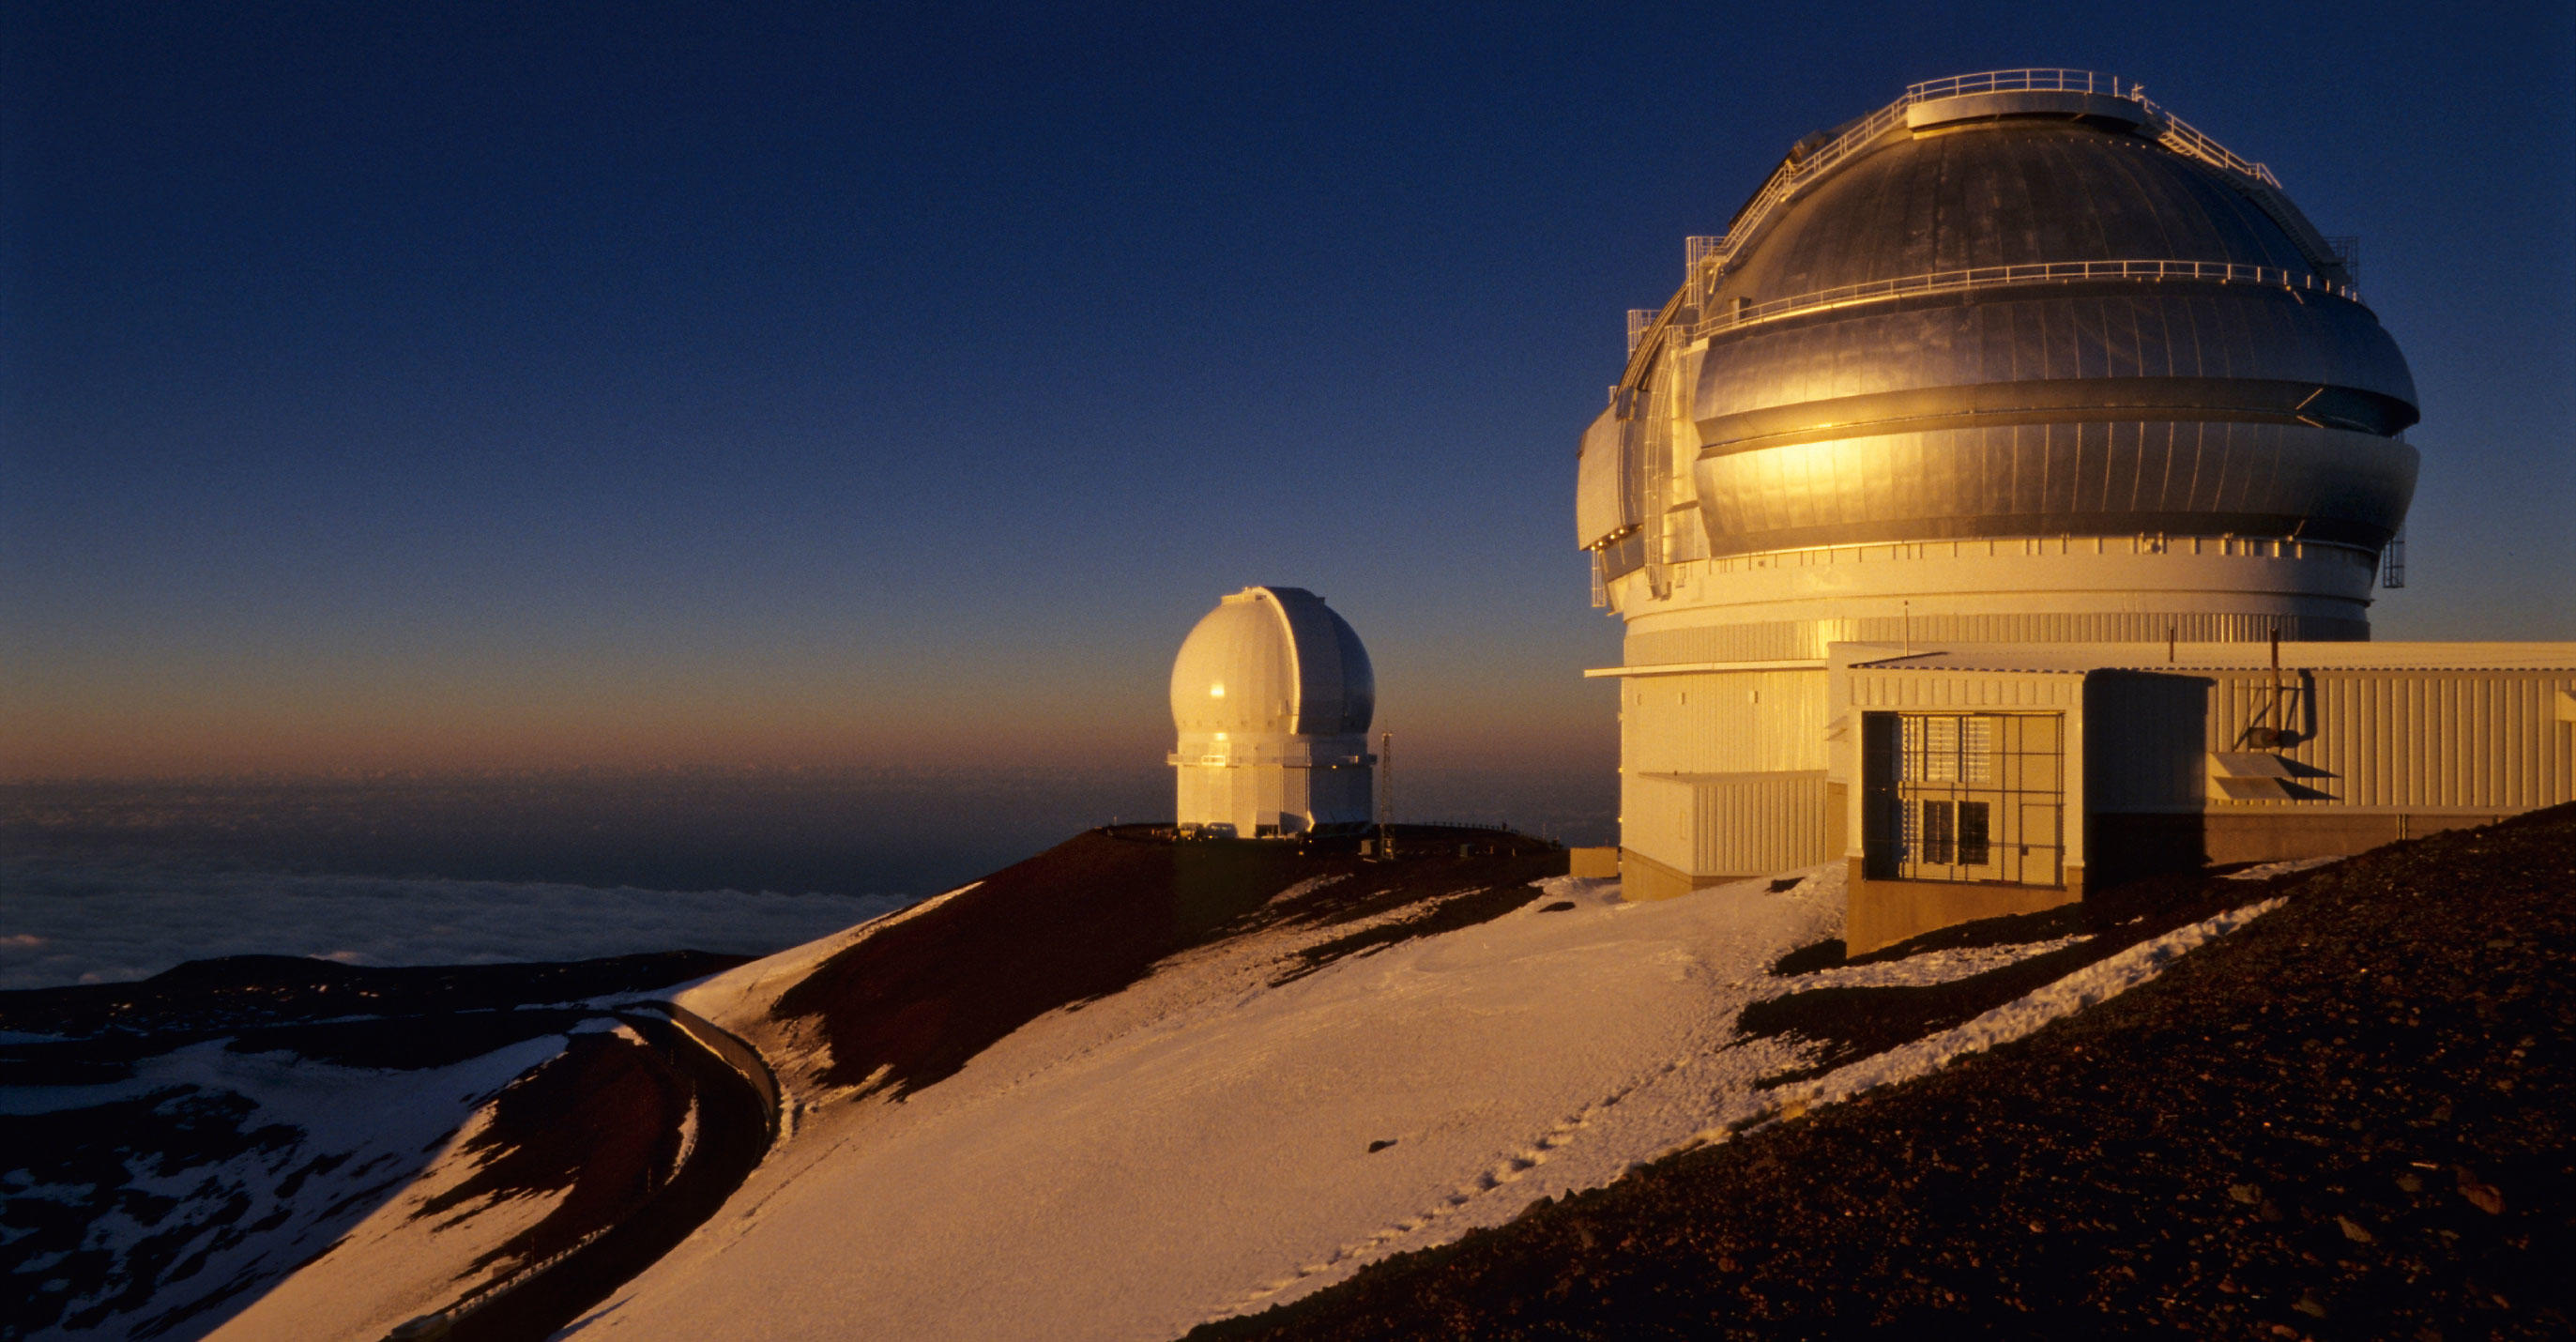 Keck Observatories